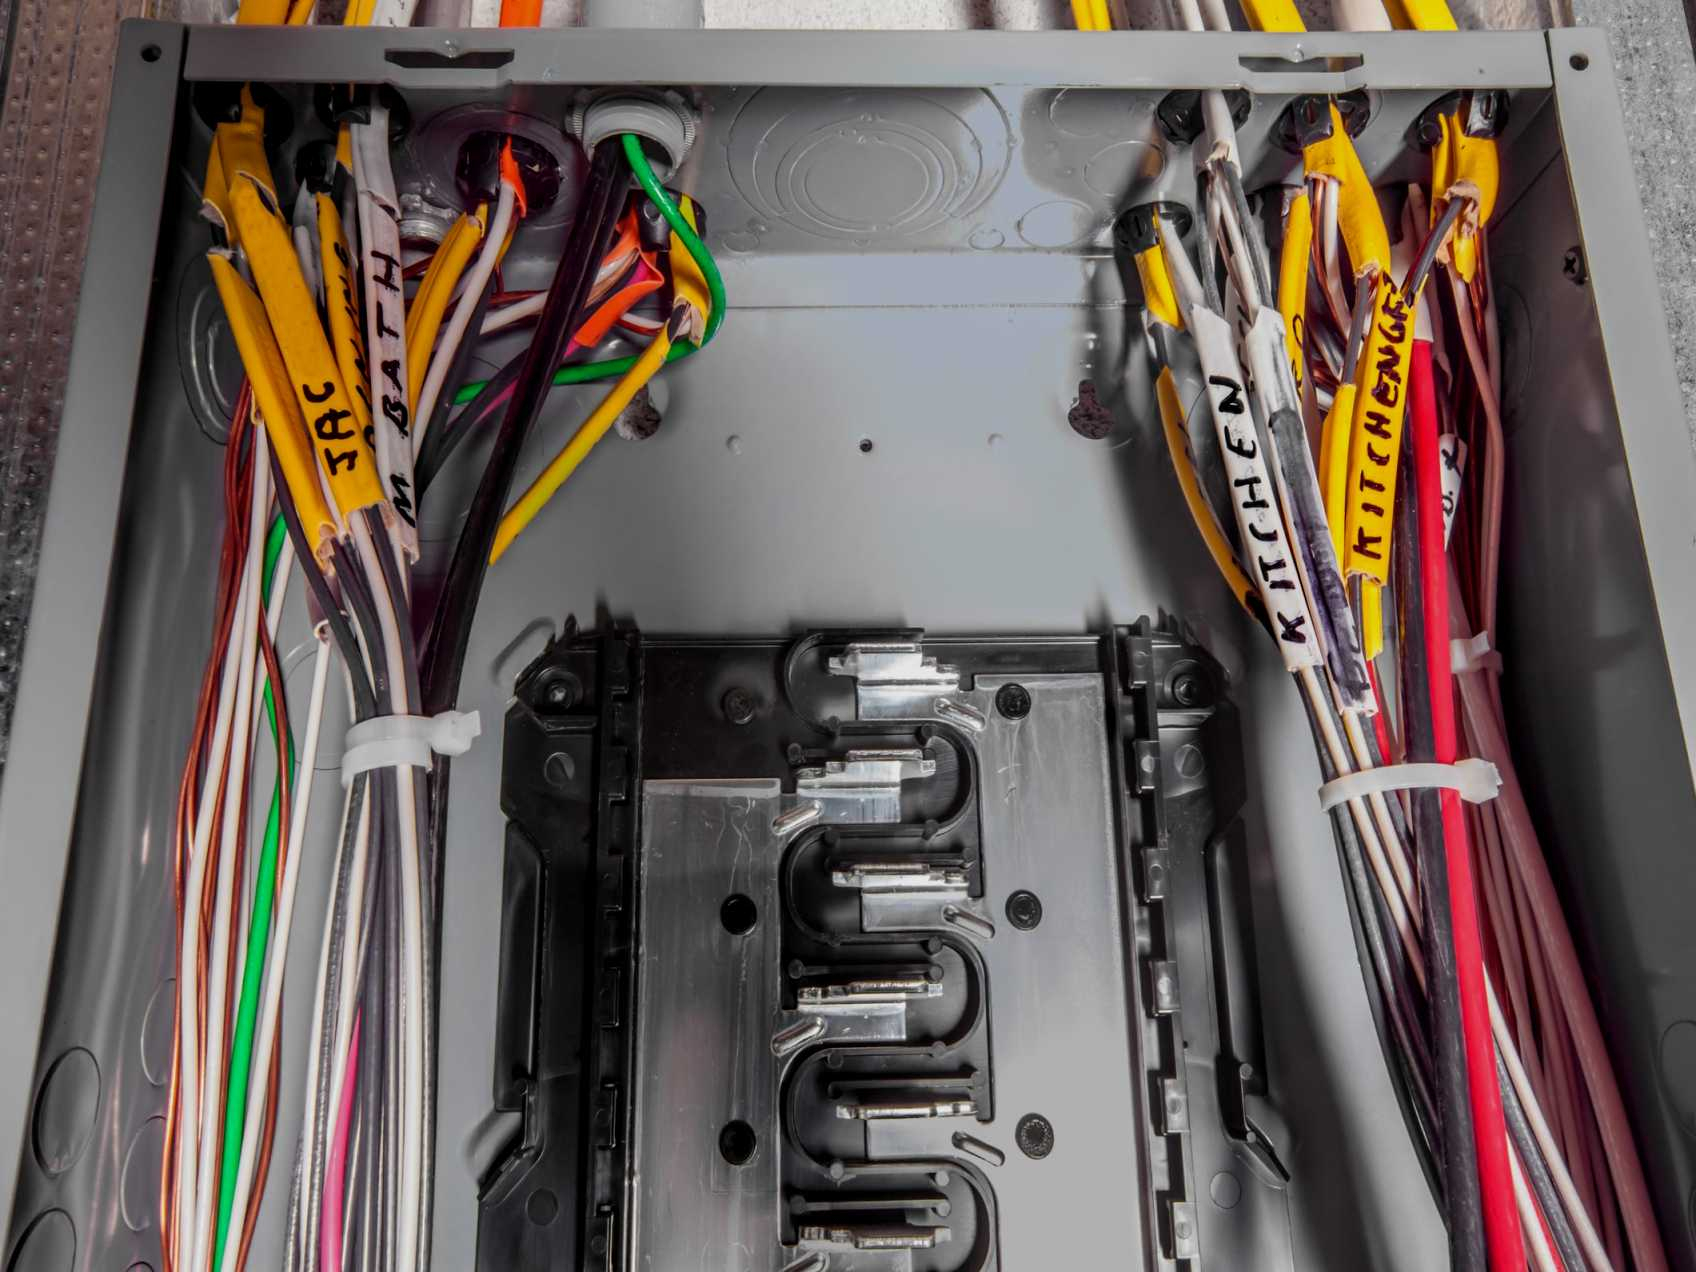 Sub Panel Wiring Diagram An Overview Of Wiring An Electrical Circuit - Electrical Sub Panel Wiring Diagram